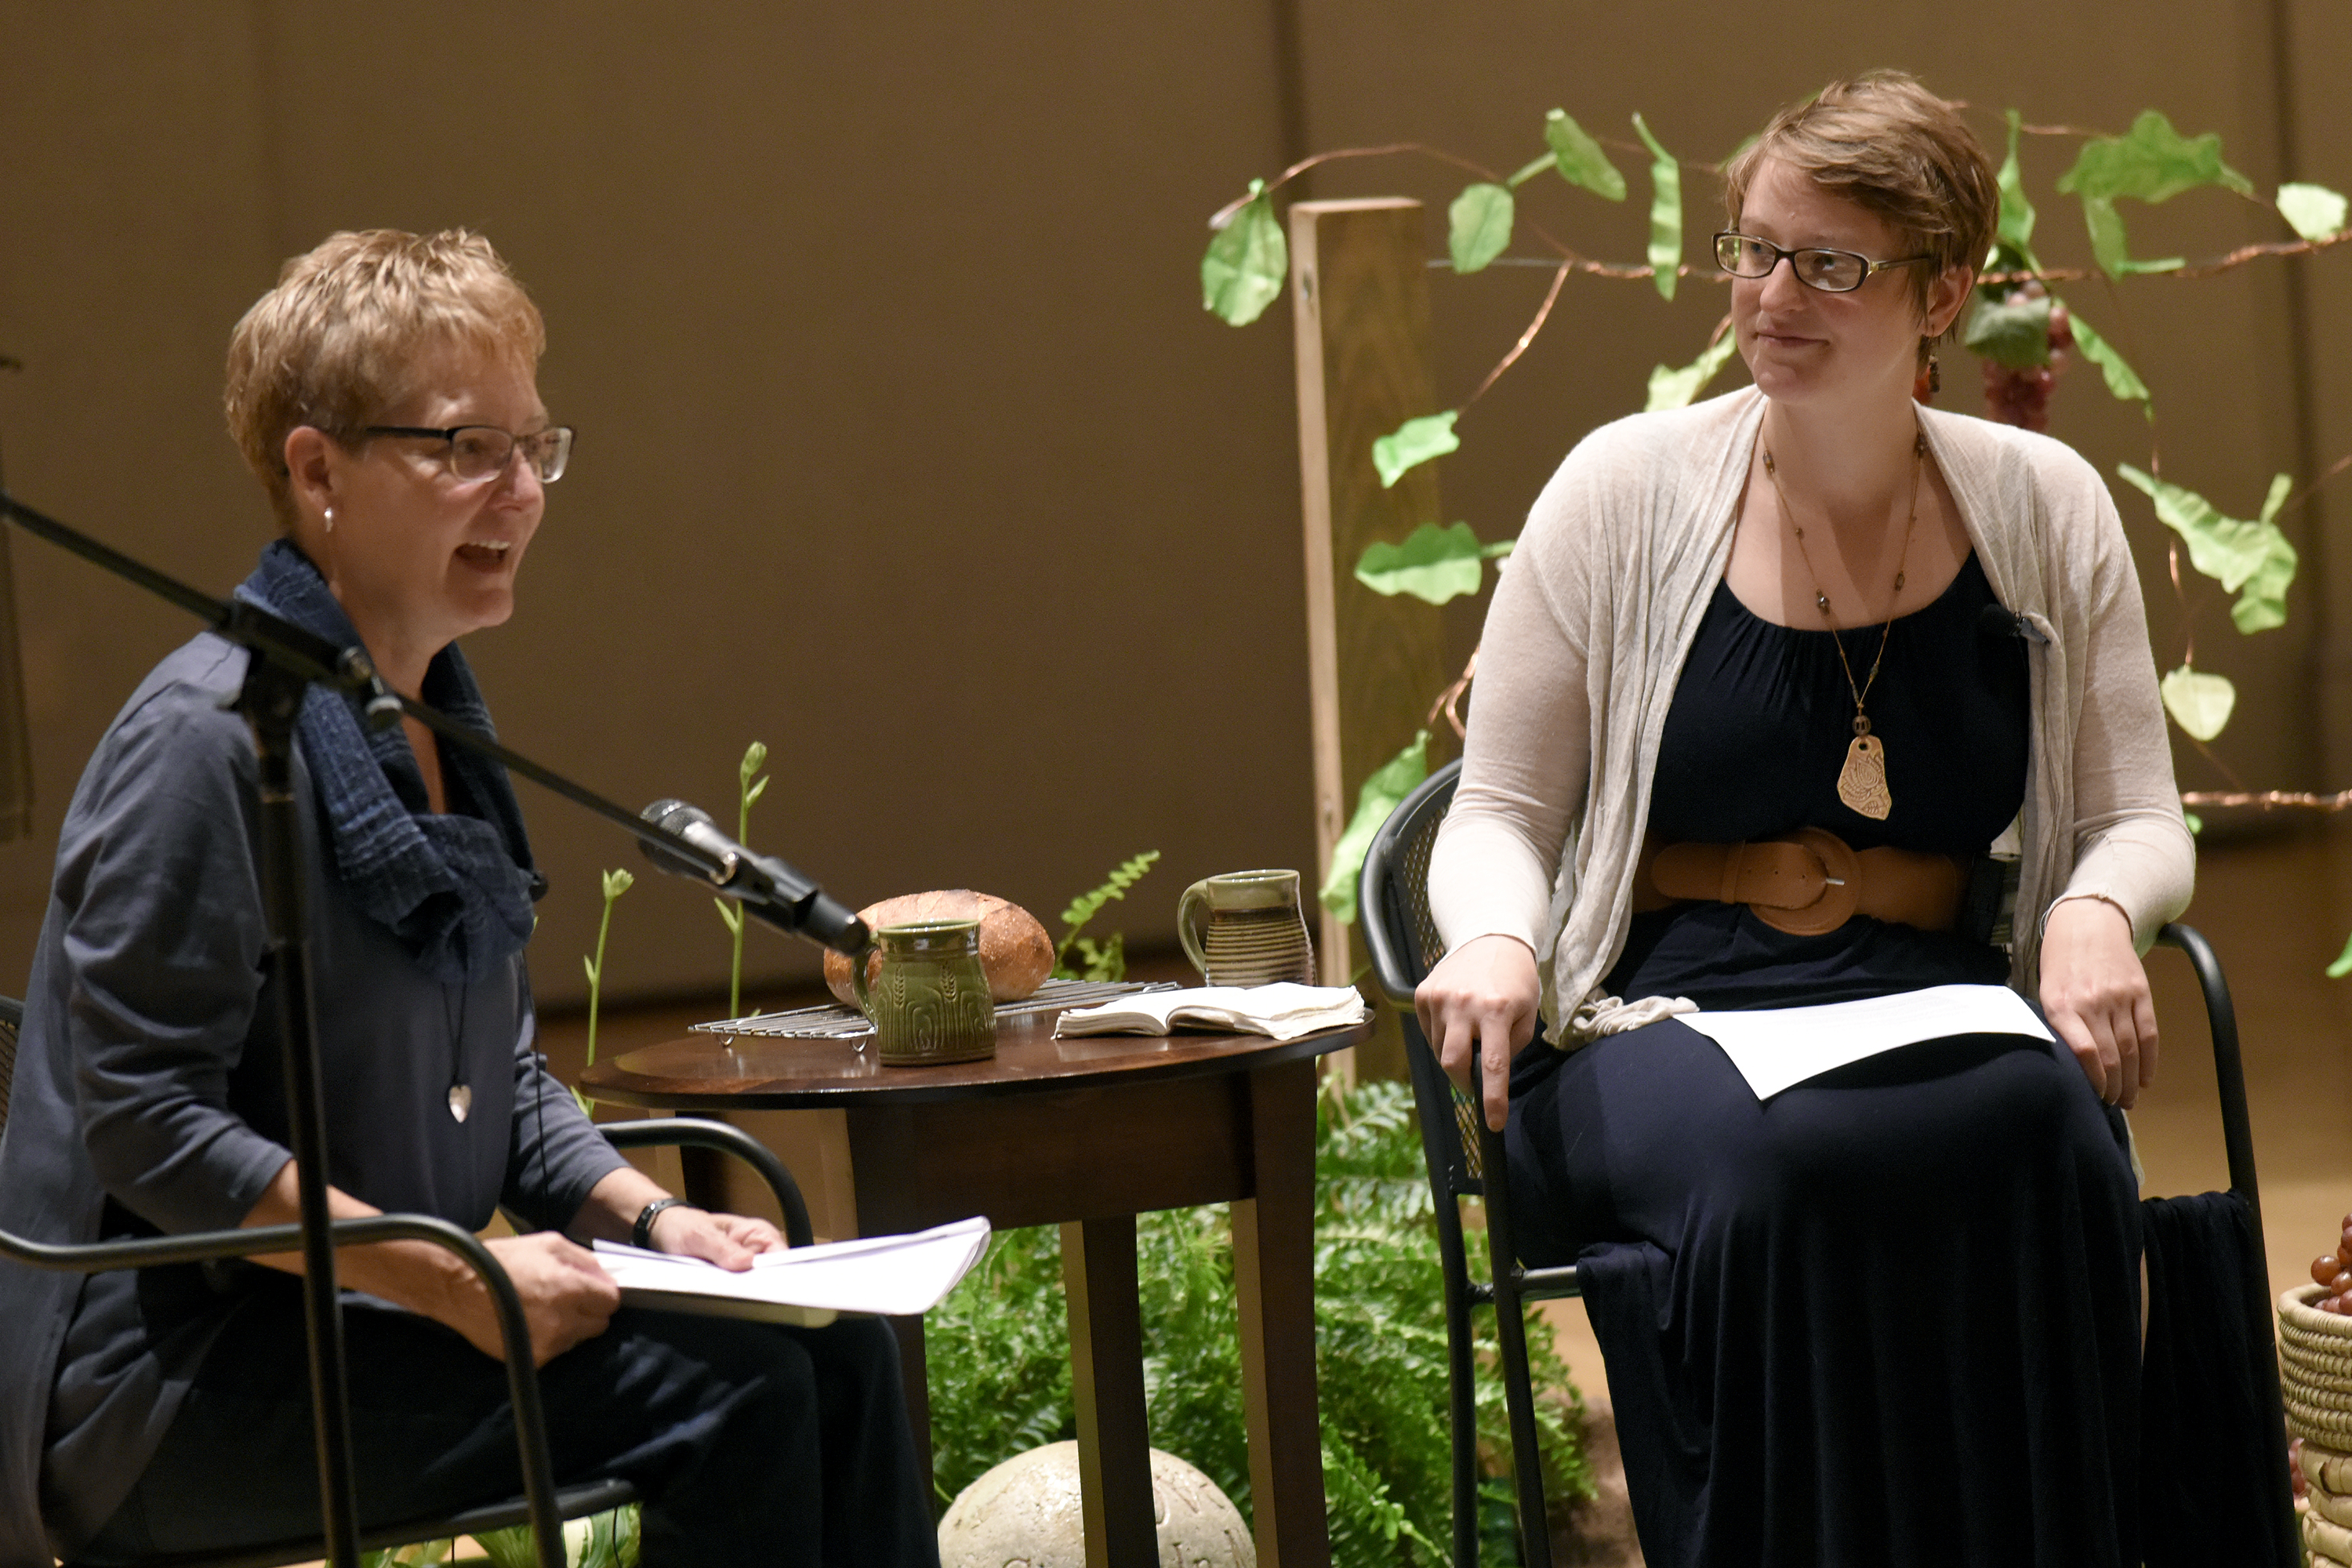 Anita Rediger (left) and Emily Hedrick present a conversational sermon during the Saturday morning worship service at Yoder Recital Hall during the Central District Conference, Friday, June 23, 2017, at Bluffton University, Bluffton, OH. Rediger is pastor at Emmaus Road Mennonite Fellowship and Hedrick is pastor at Lima Mennonite Church. Photograph by J. Tyler Klassen